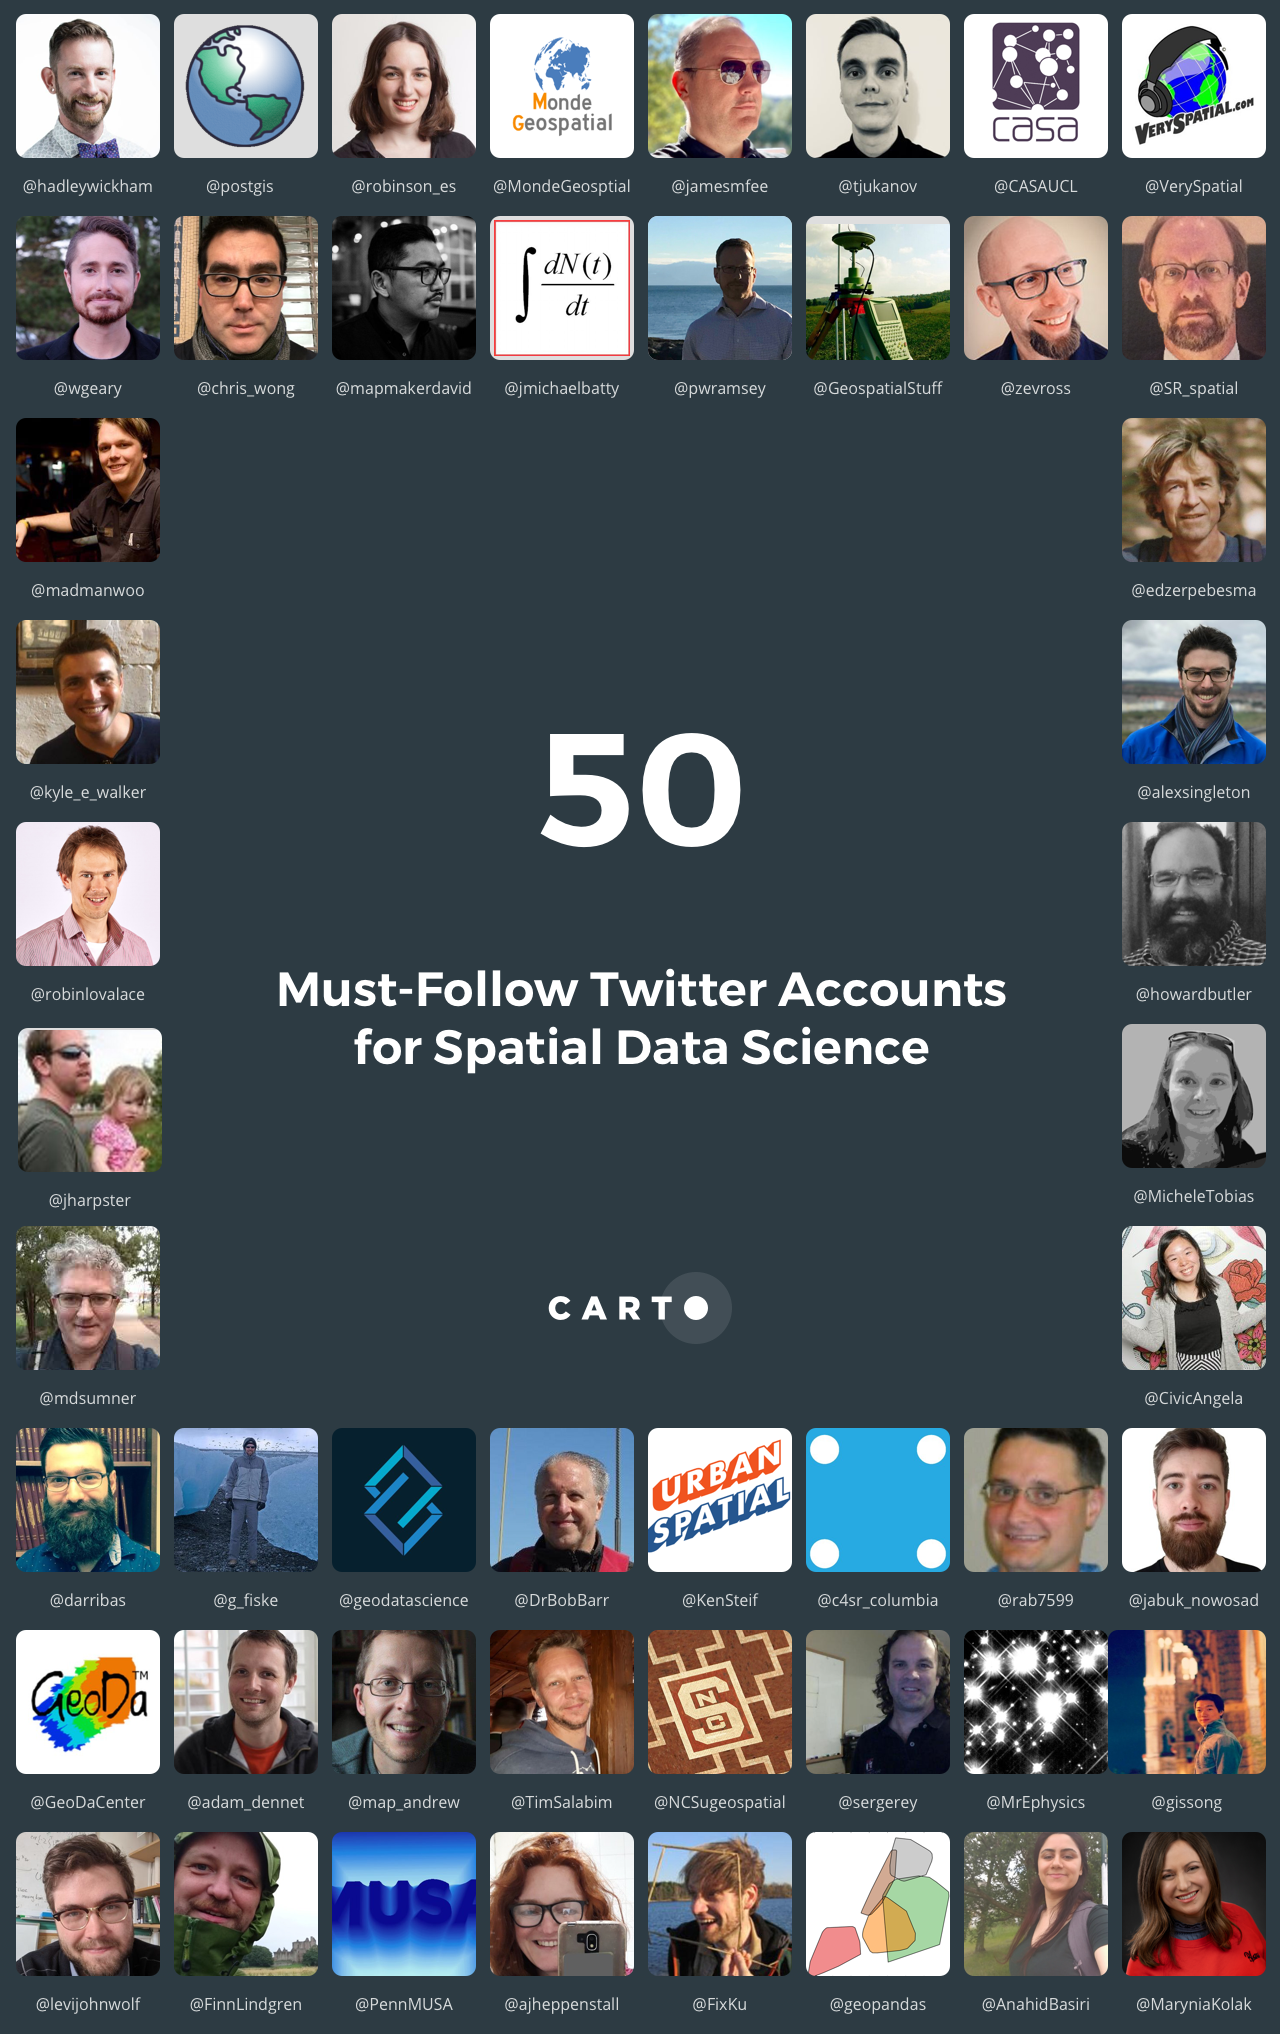 50 Must-Follow Twitter Accounts for Spatial Data Science